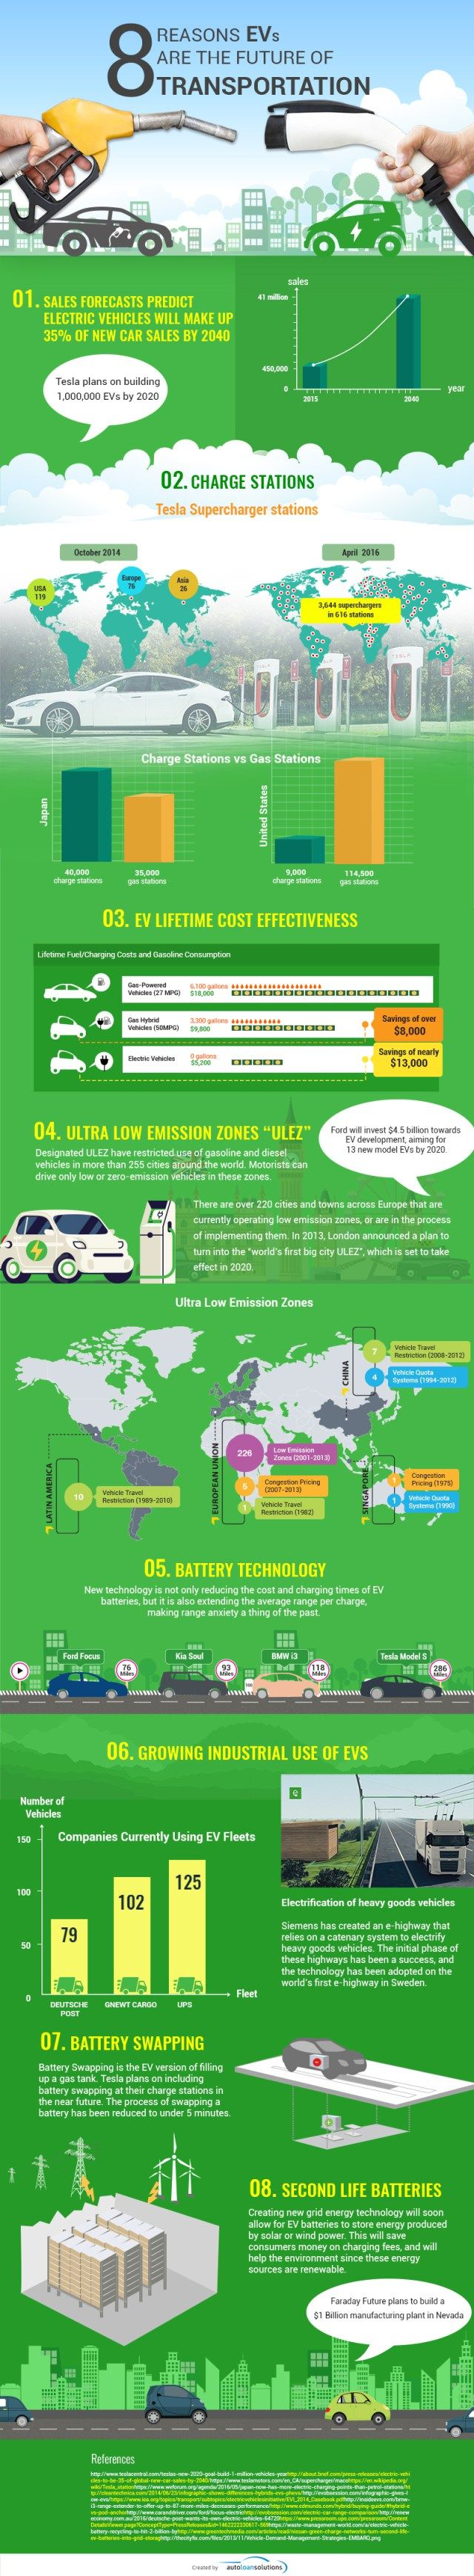 Electric vehicles aren t just a passing fad they re the clear future of transportation find out why with this electric car infographic